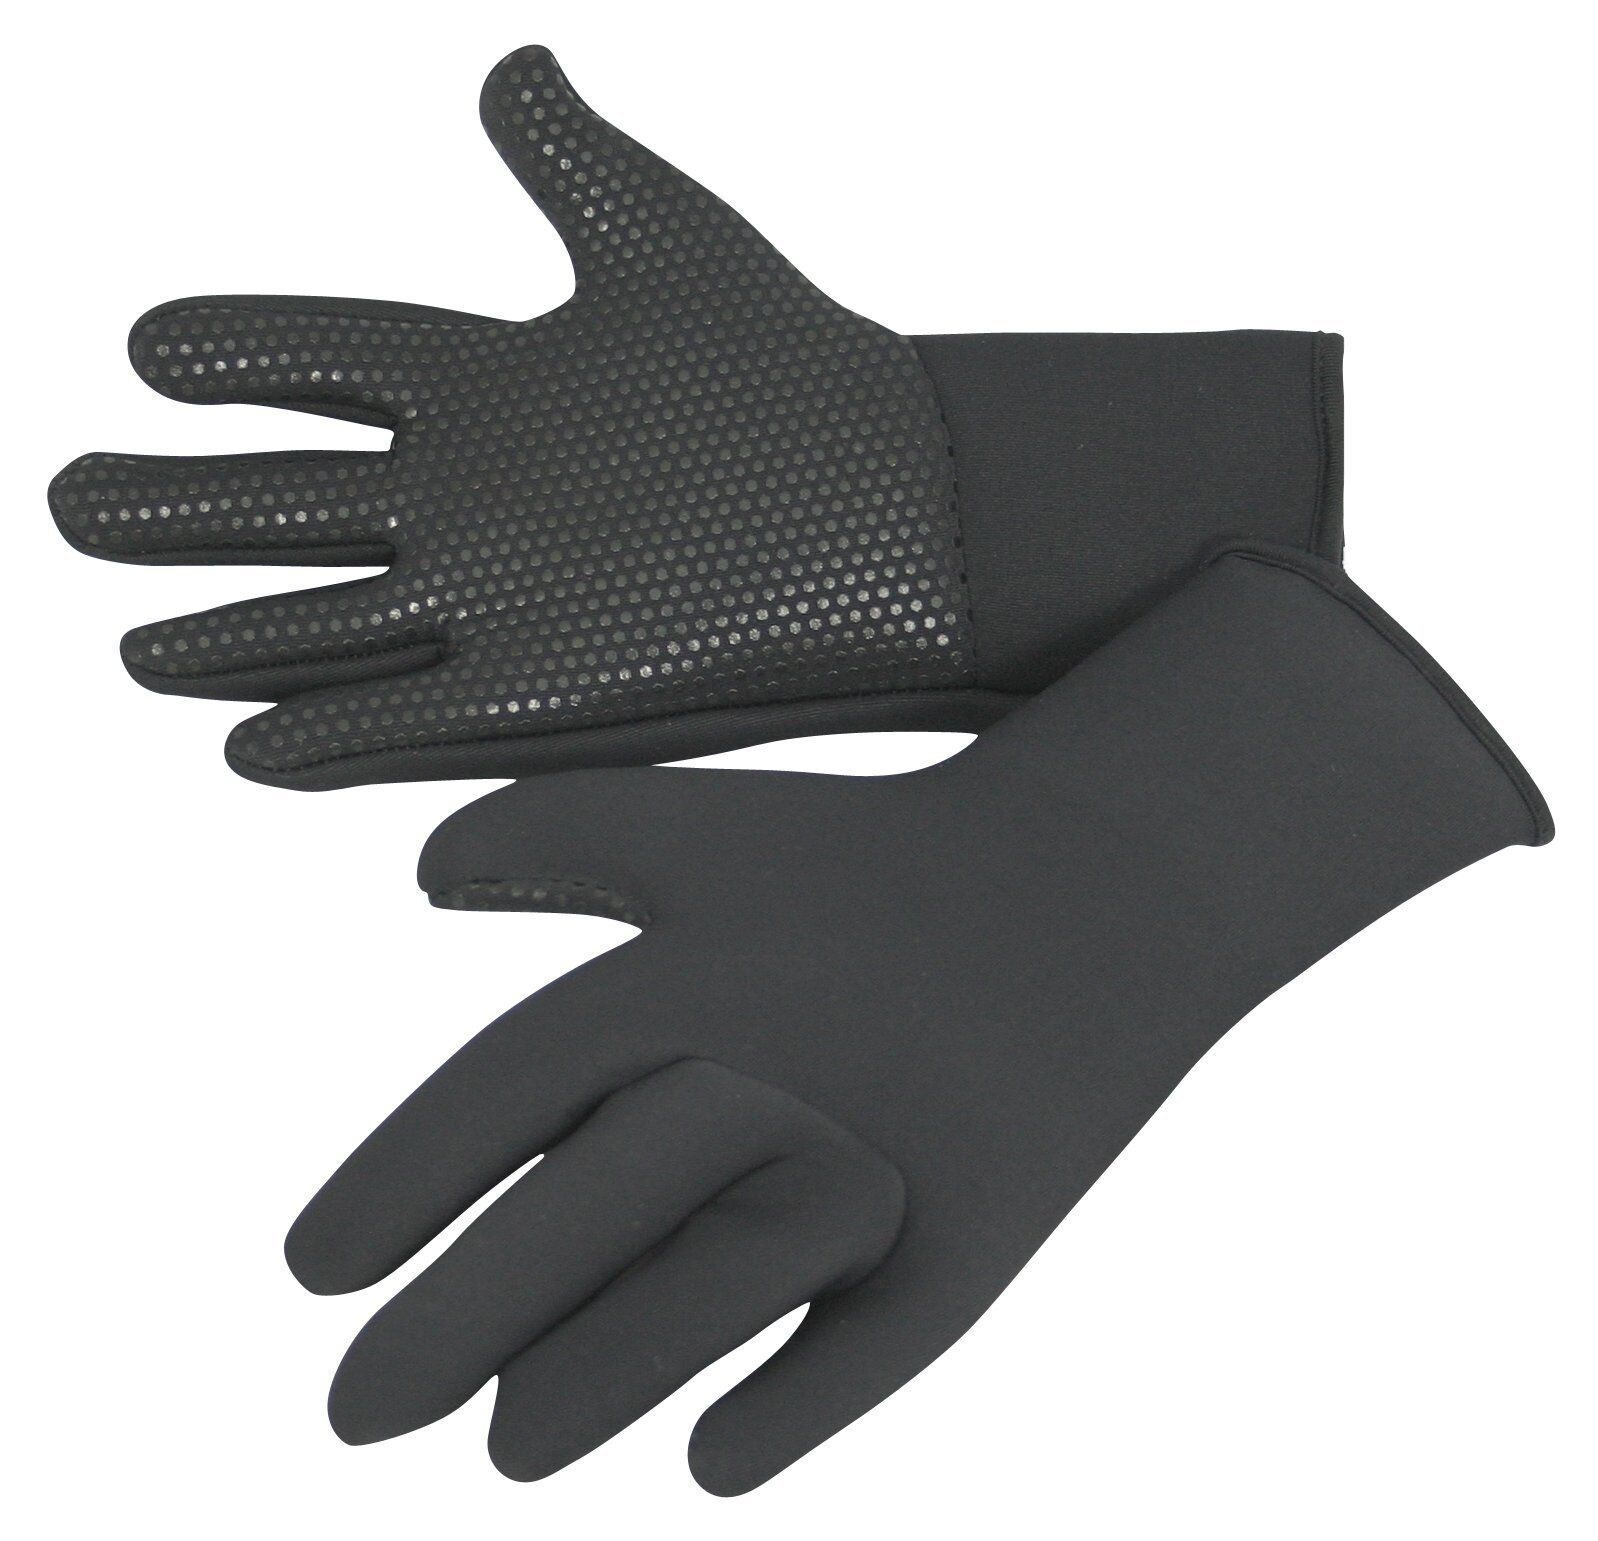 kids wetsuit gloves, titanium 3mm neo, grippy palms, warm & stretchy ages 5 - 15